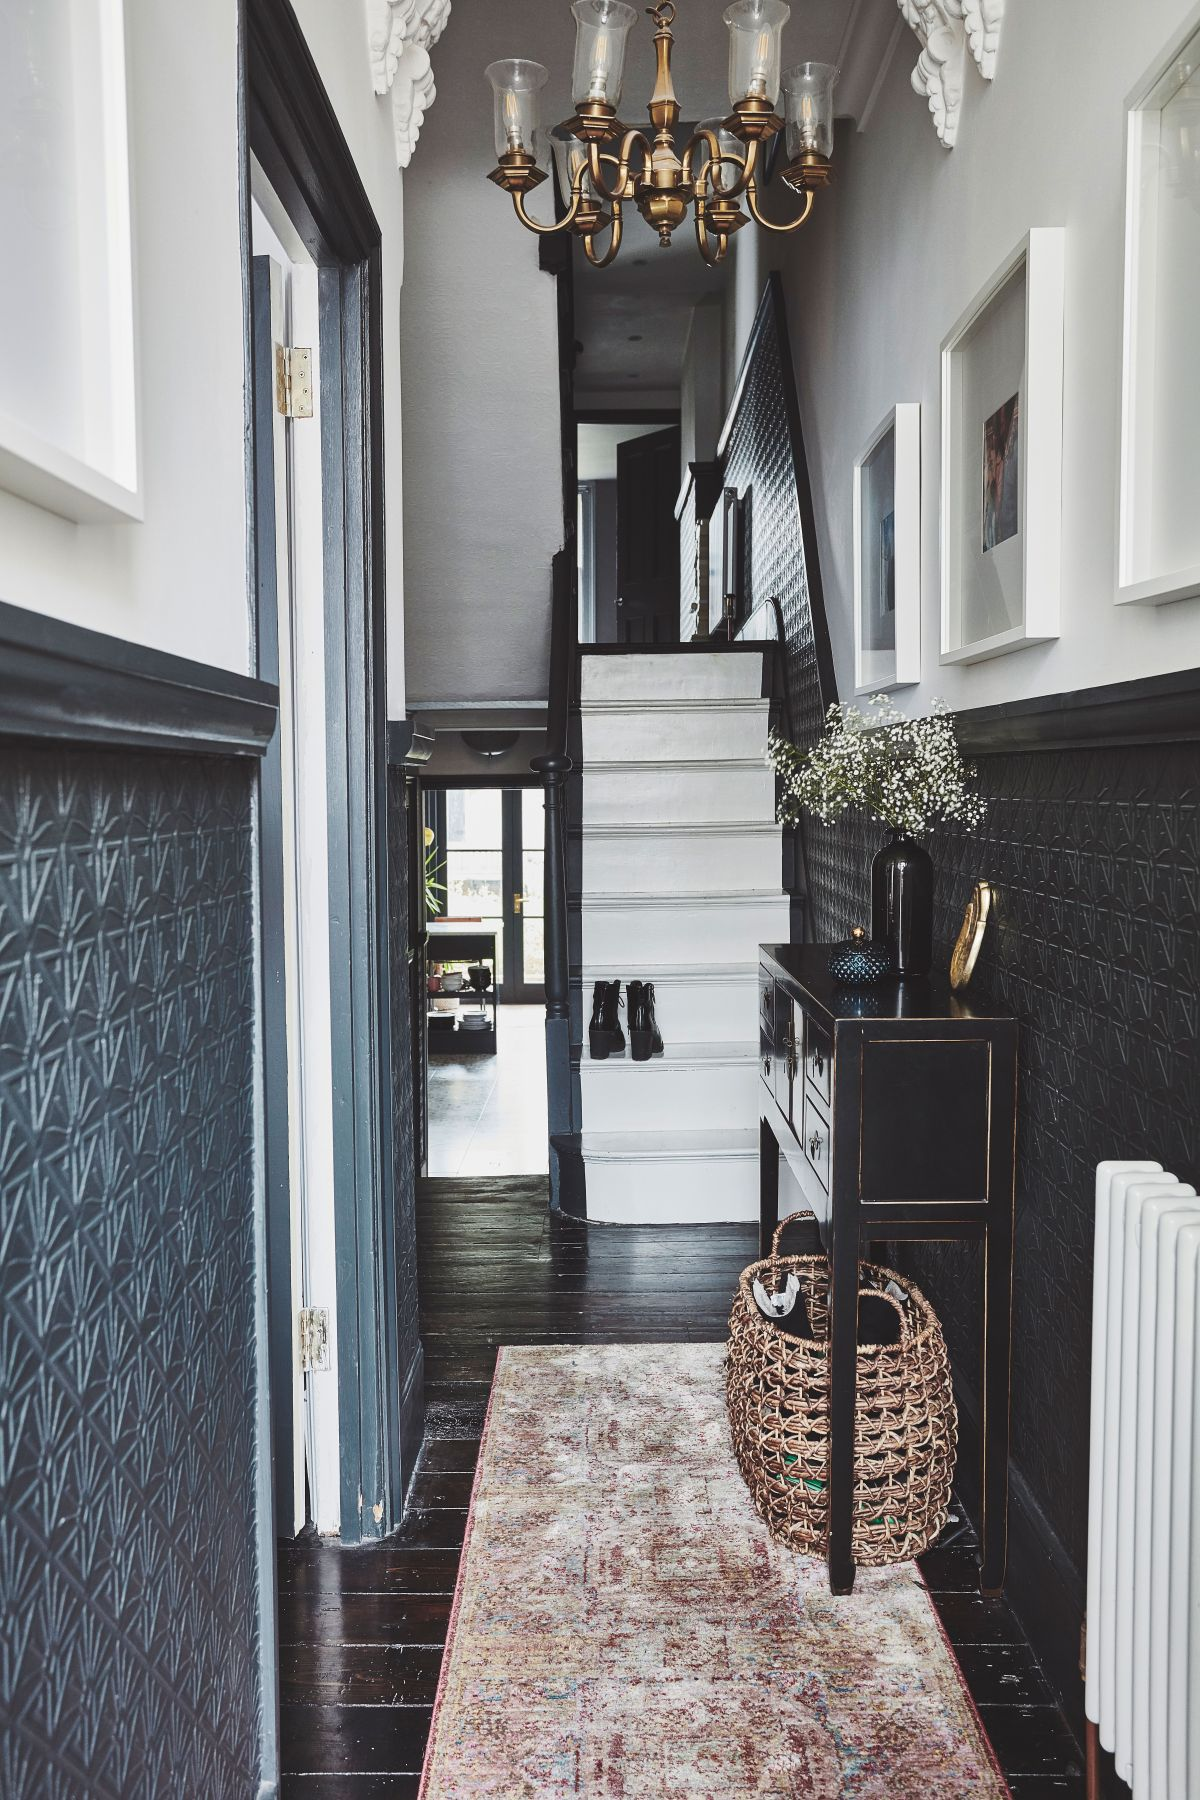 45 hallway ideas to add style (and practicality) to your entry